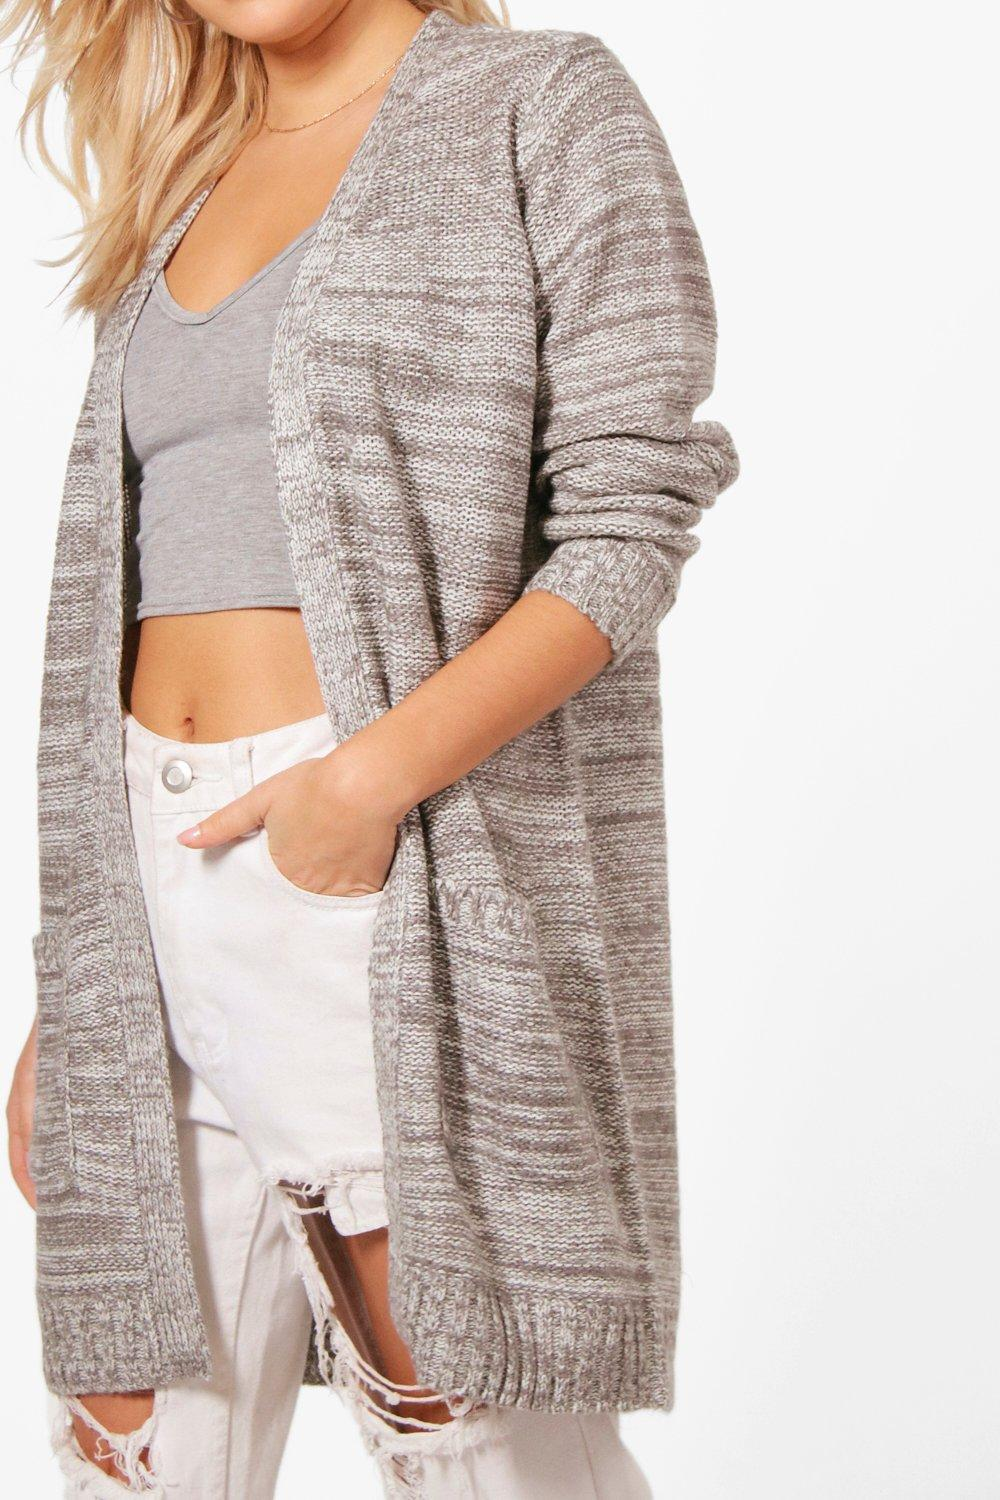 boohoo! Brooke Marl Edge To Edge Cardigan カーディガン